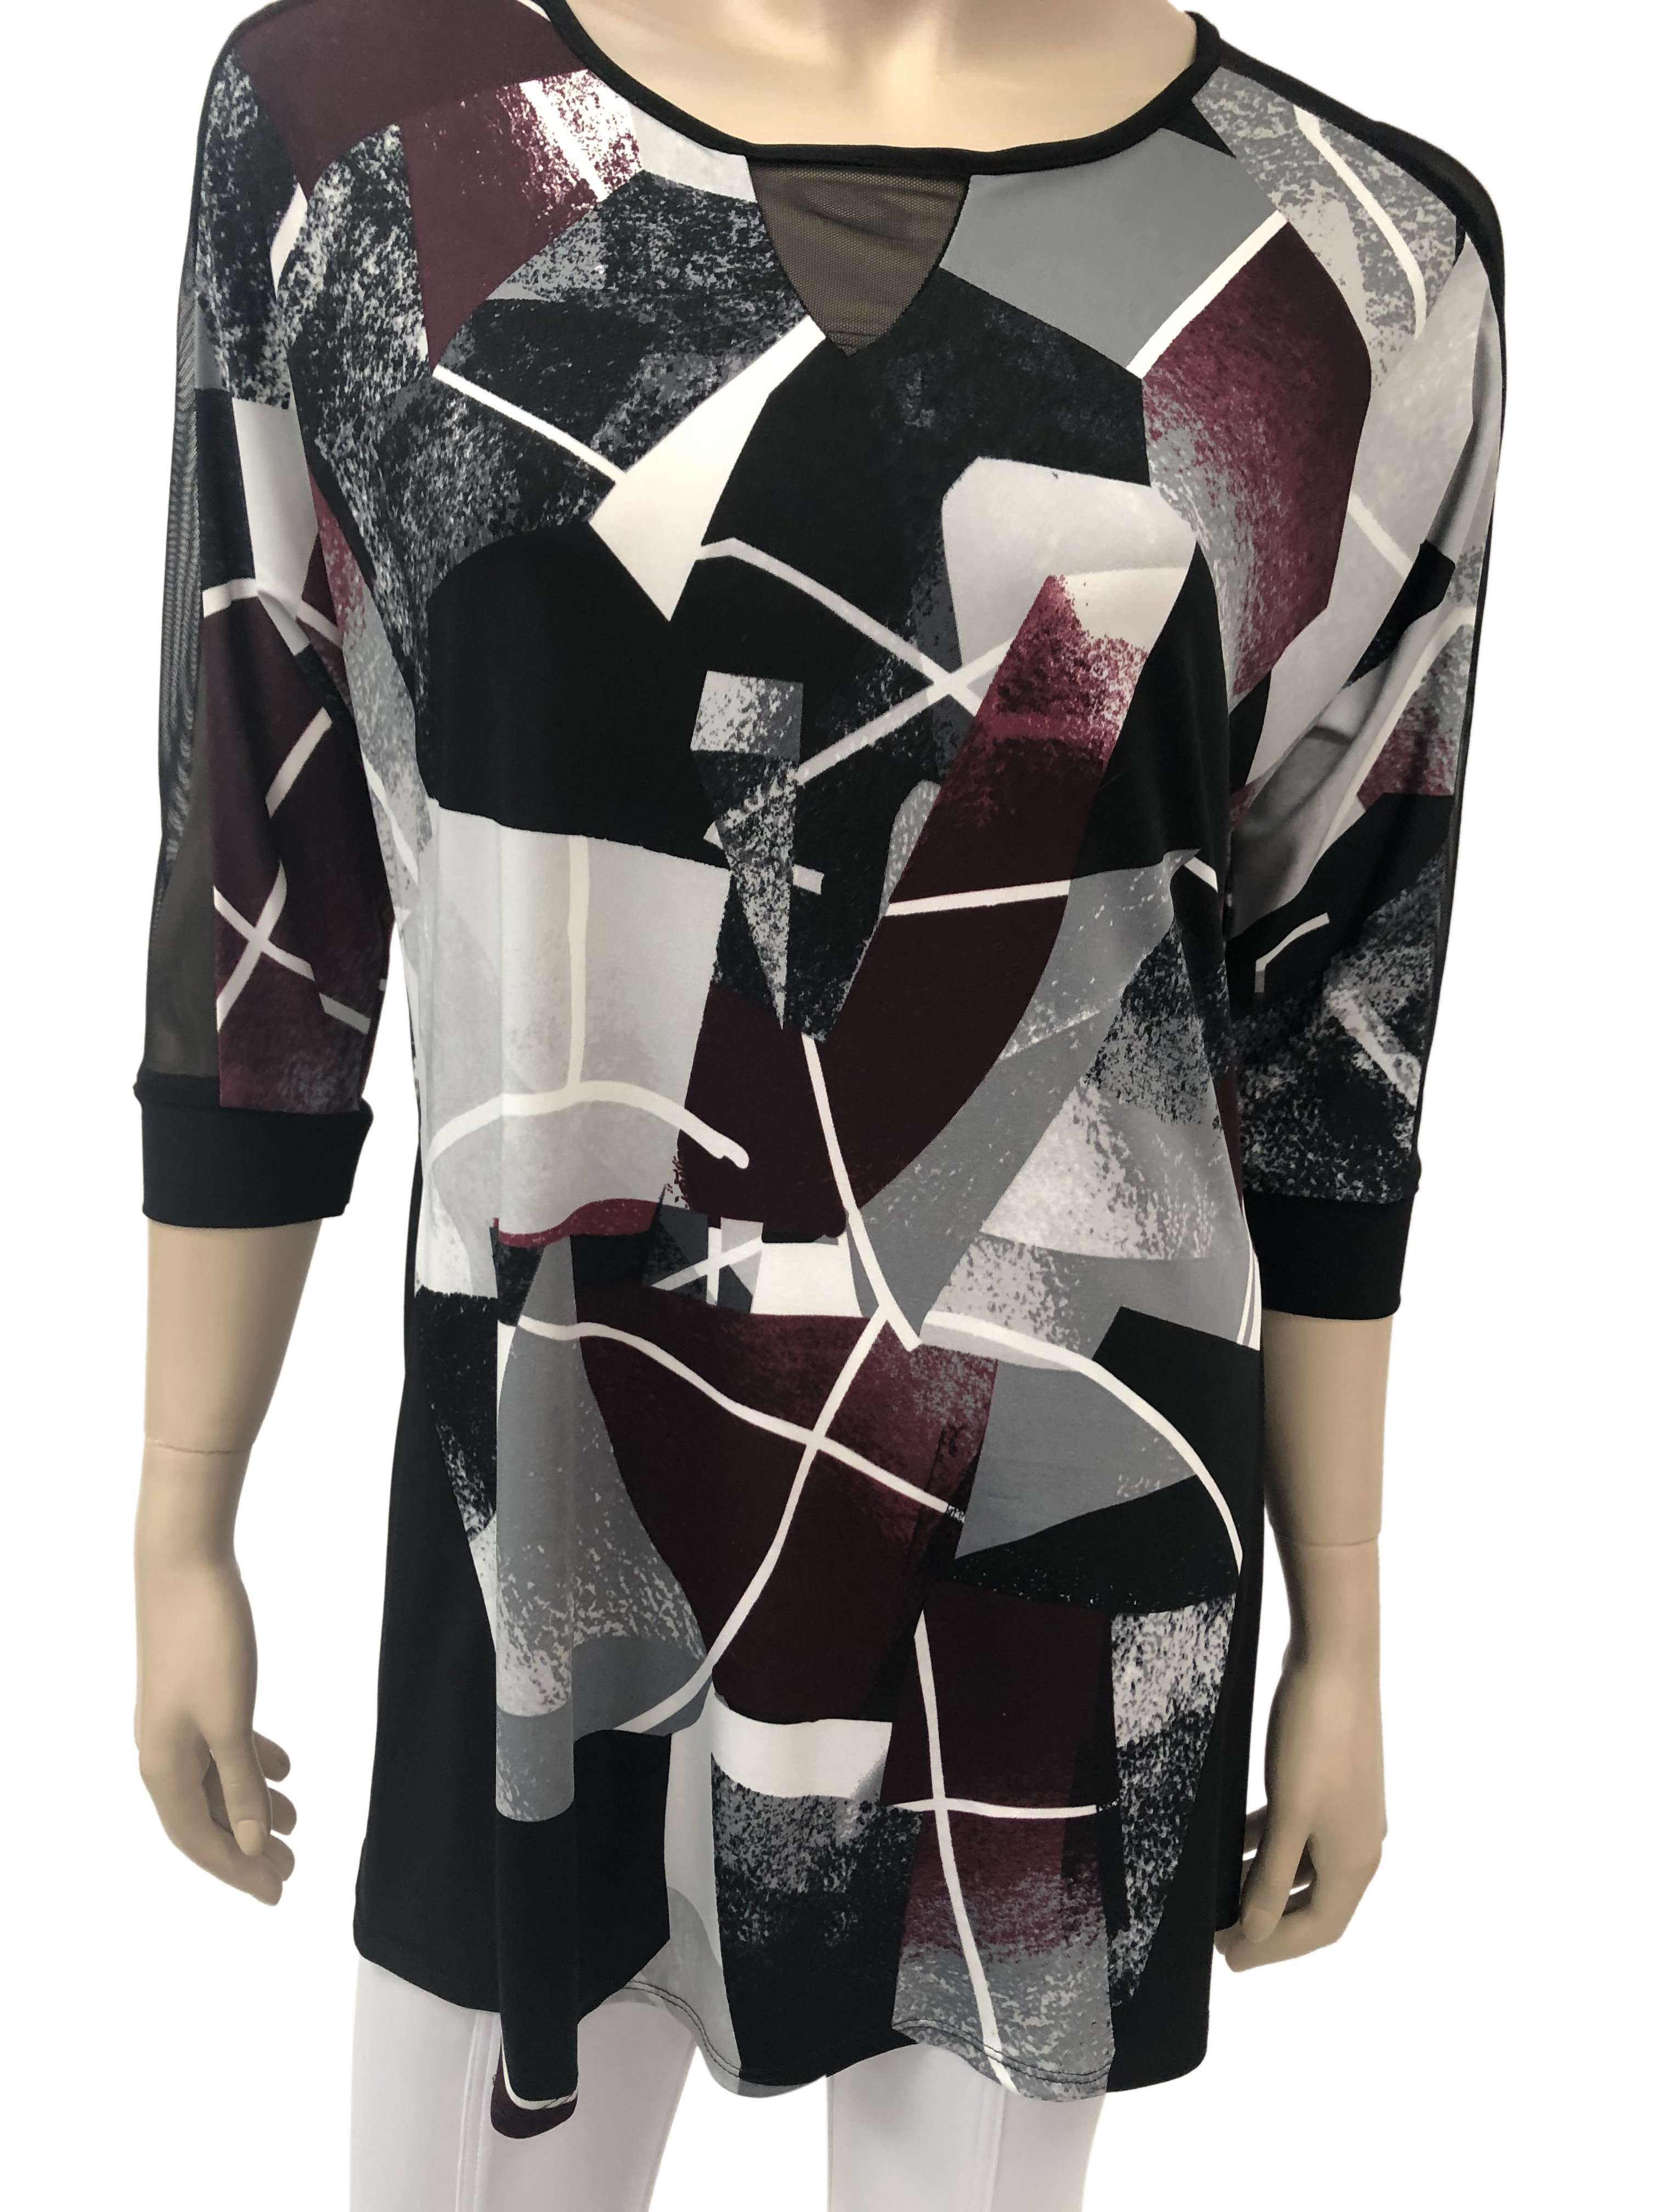 Women's tops On Sale  XXLarge Burgundy and Black with Mesh Sleeve Inserts - Yvonne Marie - Yvonne Marie